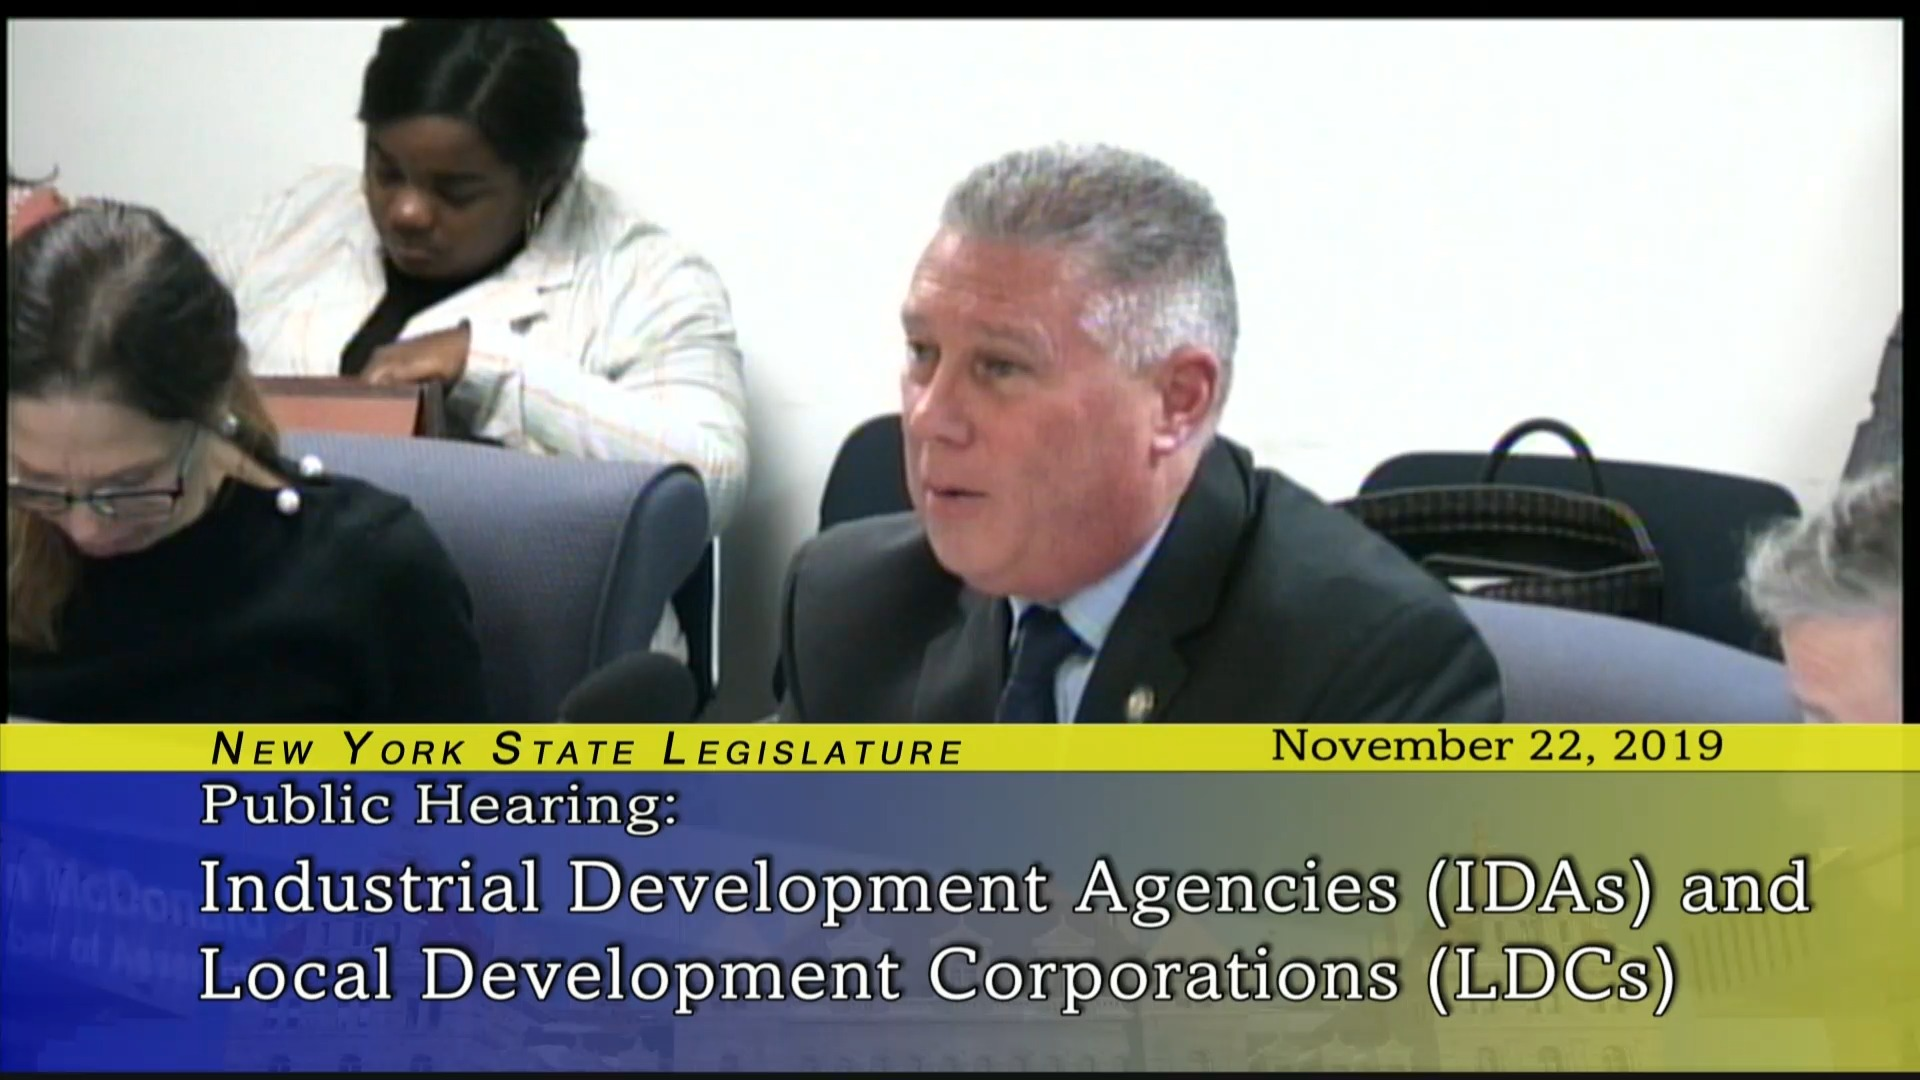 Public Hearing On IDA's and LDC's effectiveness